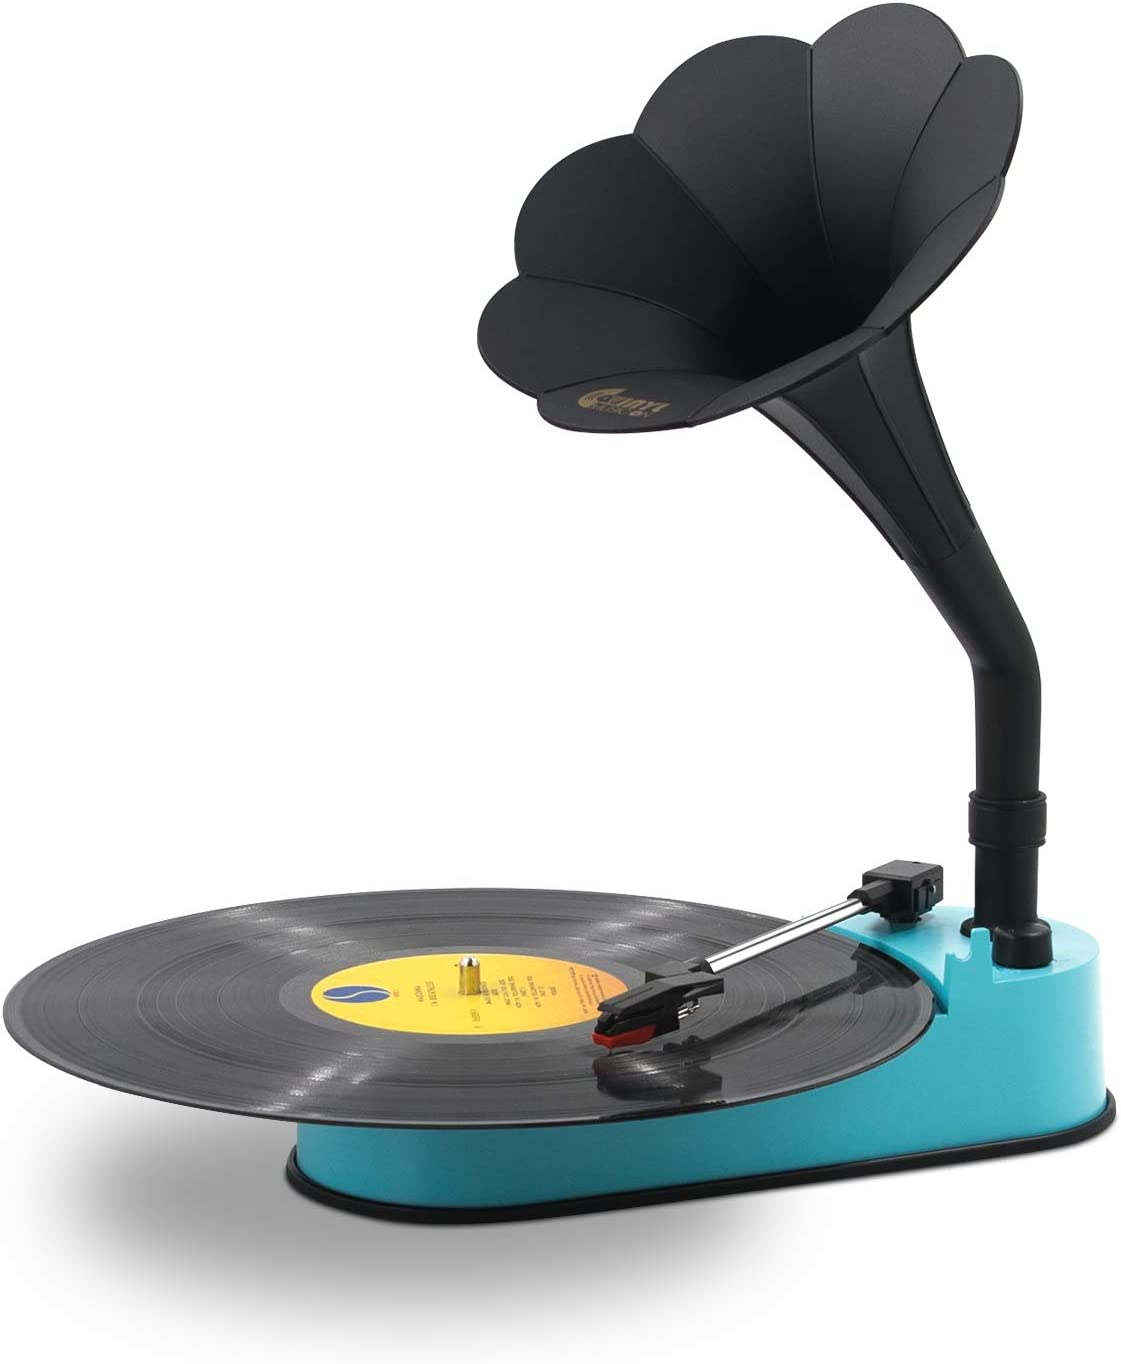 Turntable Record Player with Horn Speaker for 33/45 RPM Records,Mini Gramophone Supporting Bluetooth Playback Blue